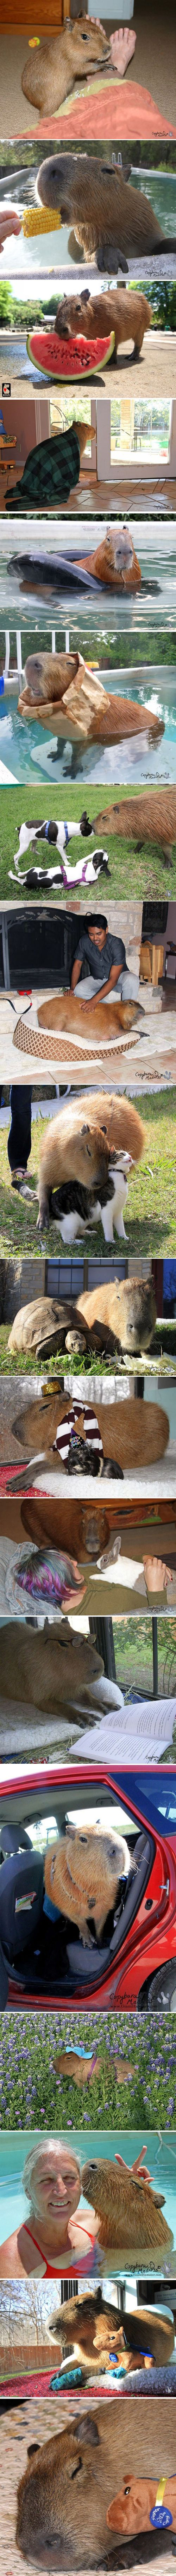 There are several other photos of another Capybara on this board.. her name is Cheesecake, and she resides at the Rocky Ridge Refuge (you can check them out on Pinterest)  She became well known when photos and a video of her hanging out with some puppies went viral.  She's auntie Cheesecake.  She watches the different litters of pups while their mom takes a break.  She's also friends with all the other animals... including Crouton the tortoise and Bazinga the dwarf horse. :-)